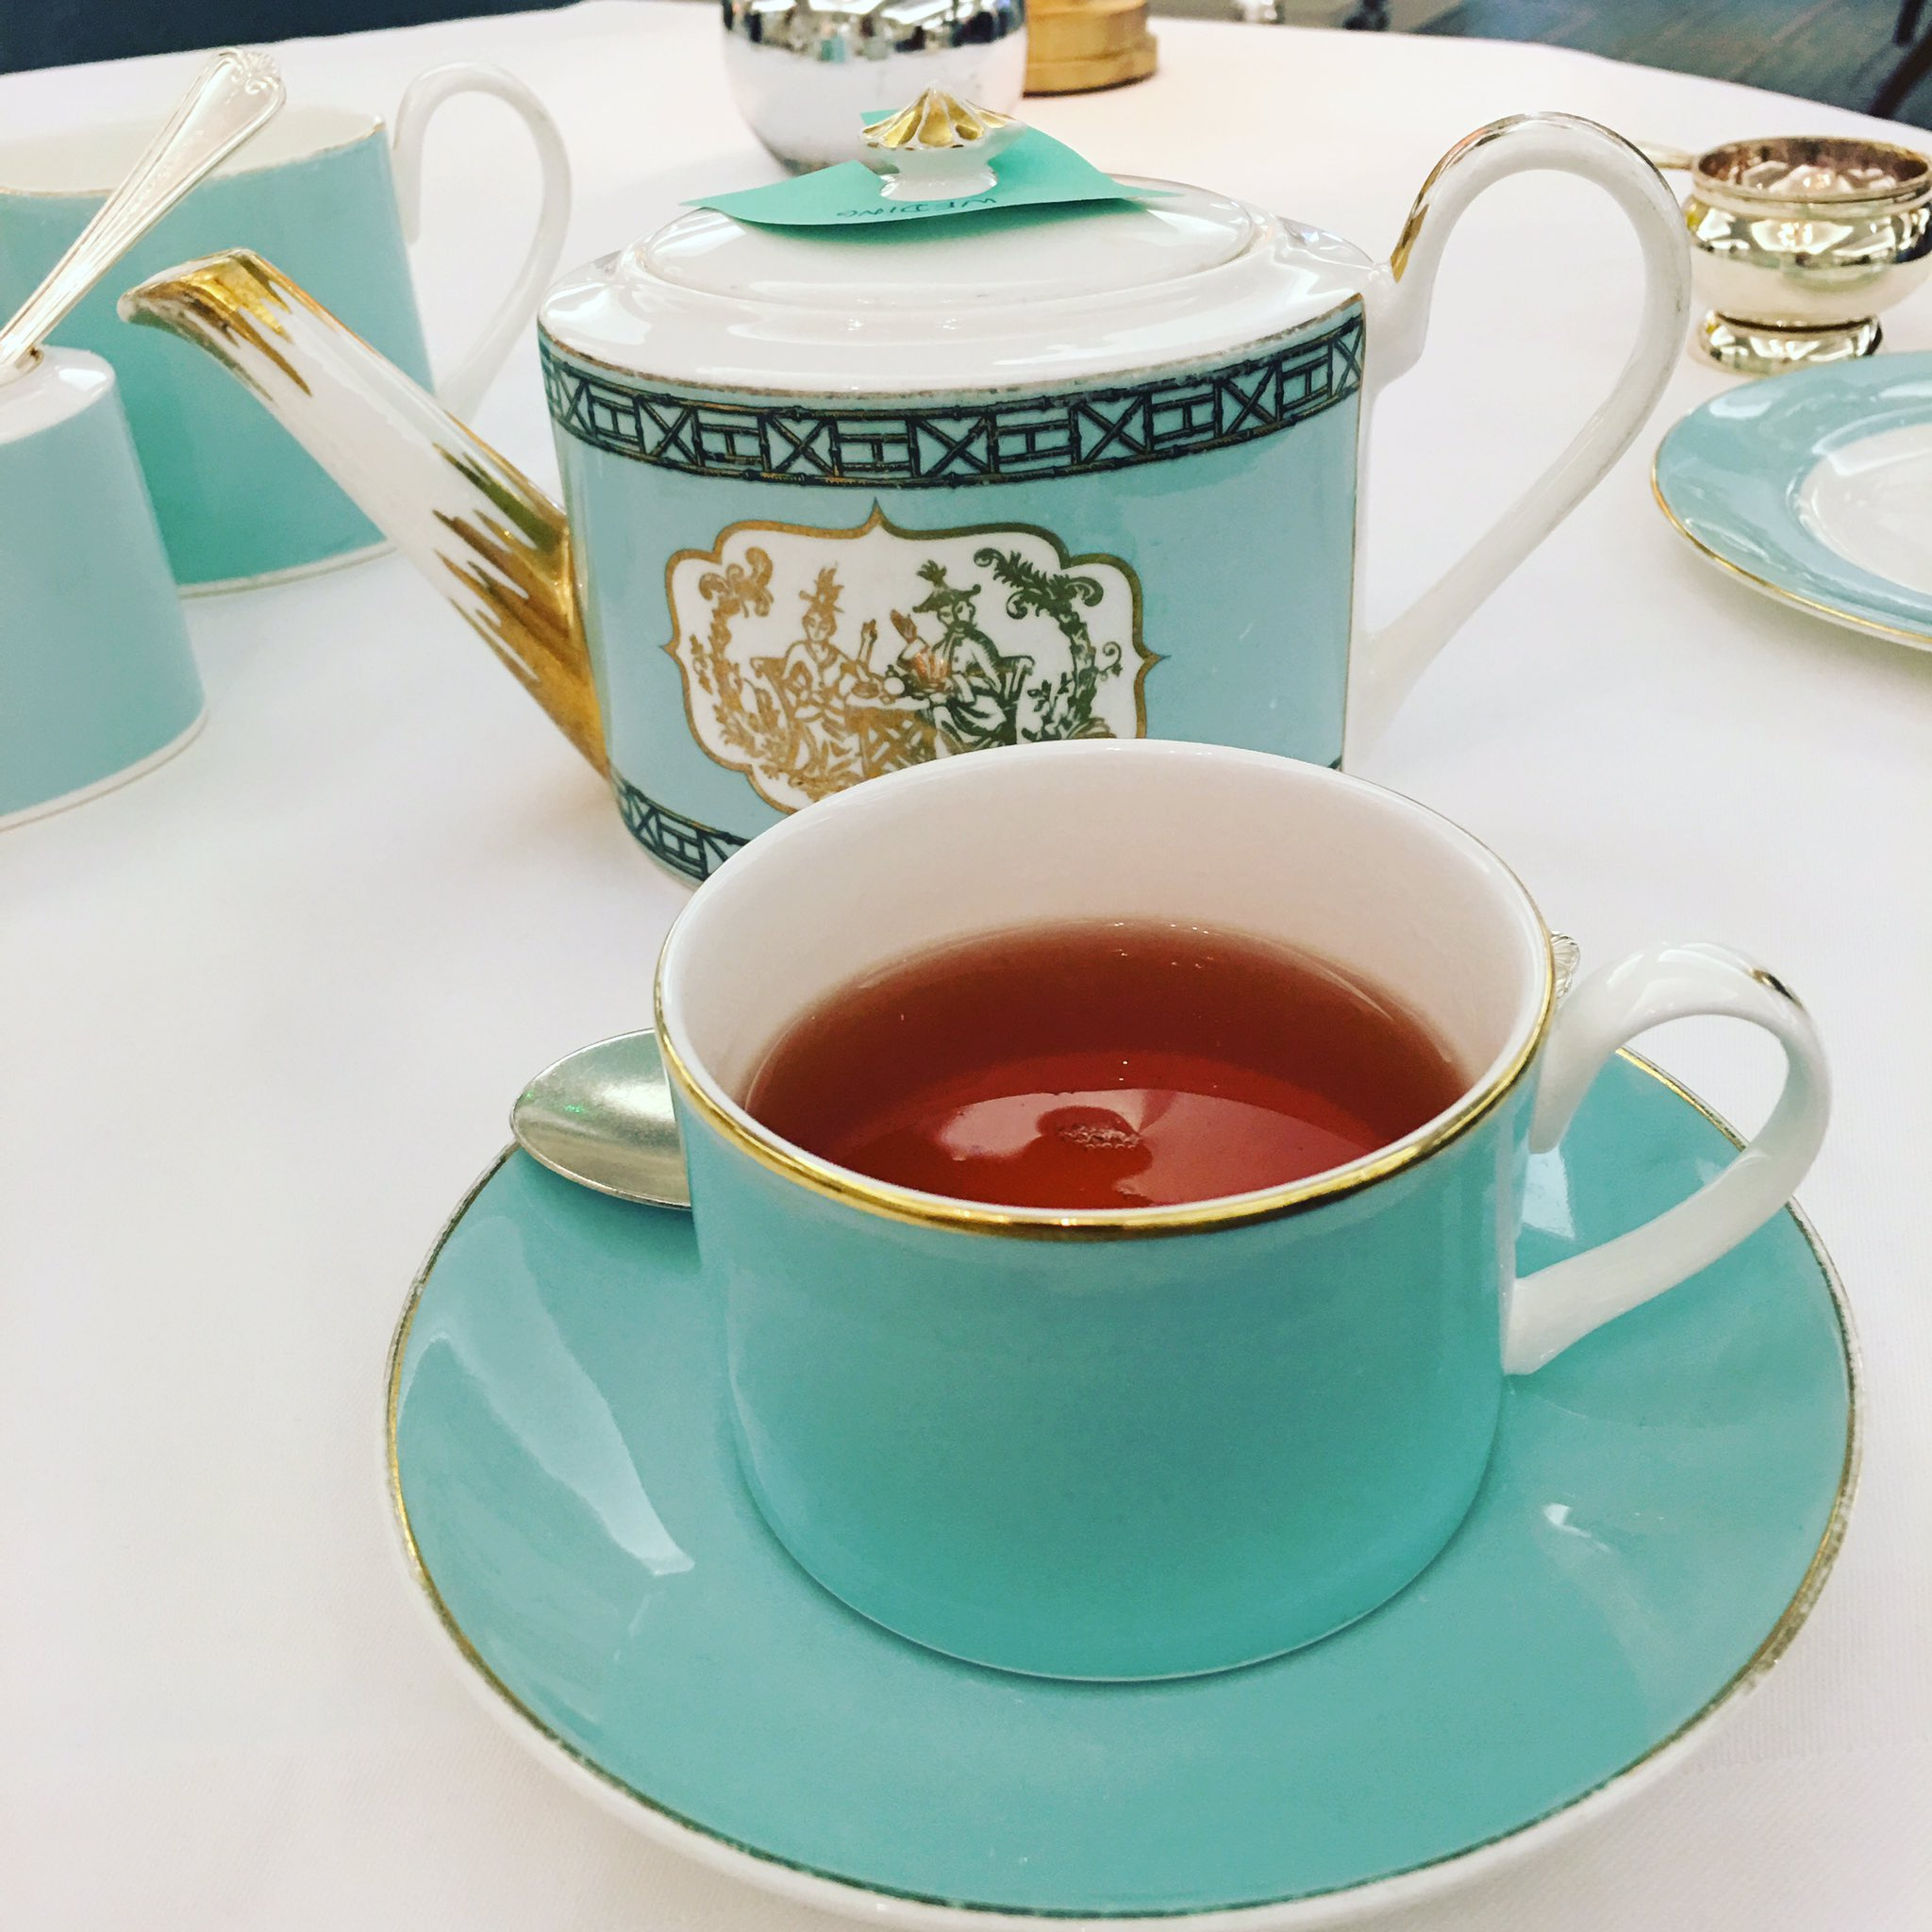 Quintessentially British, afternoon tea at @Fortnums such a wonderful treat 💙 https://t.co/epSWyVnQXC